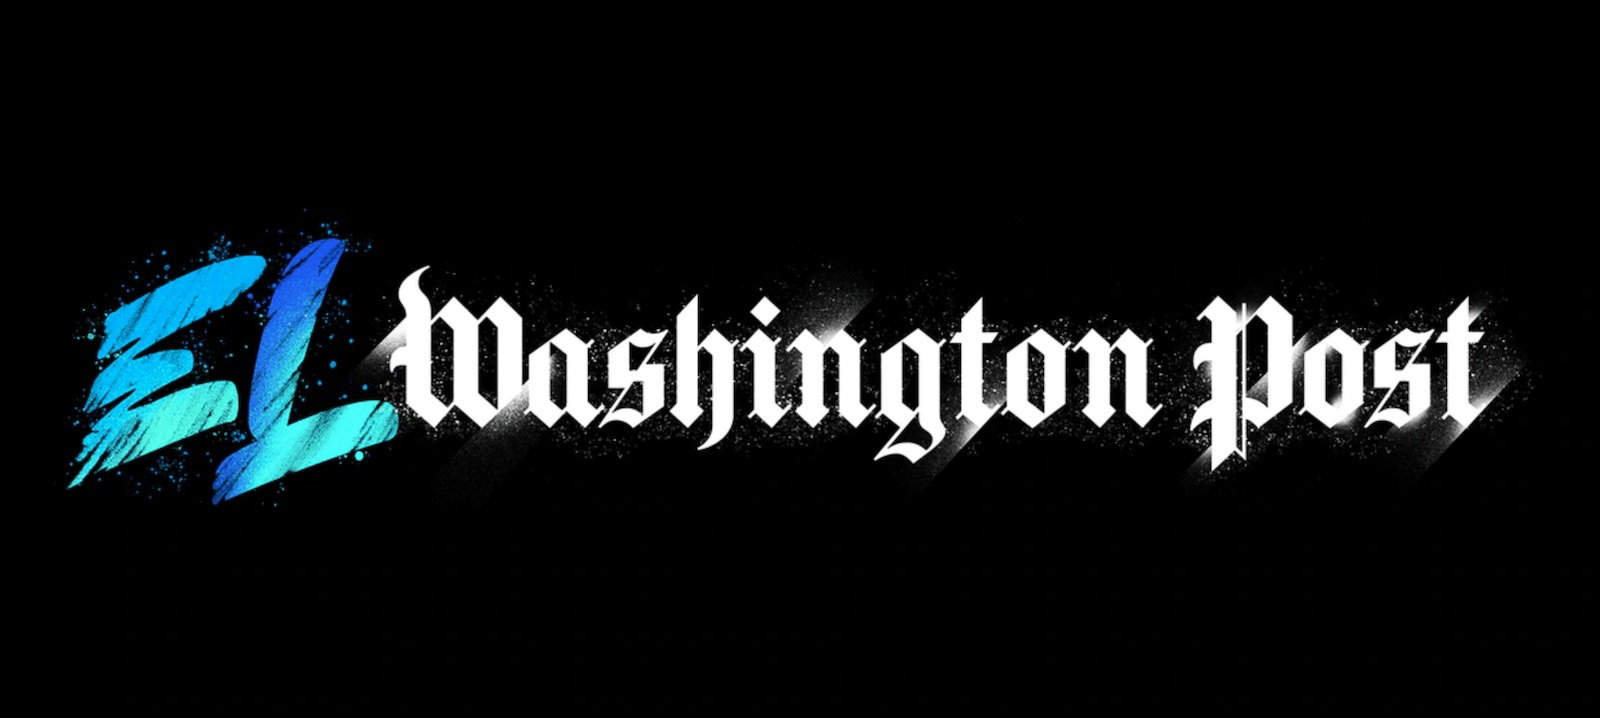 Seeking a new international audience, The Washington Post launches its first Spanish-language news podcast